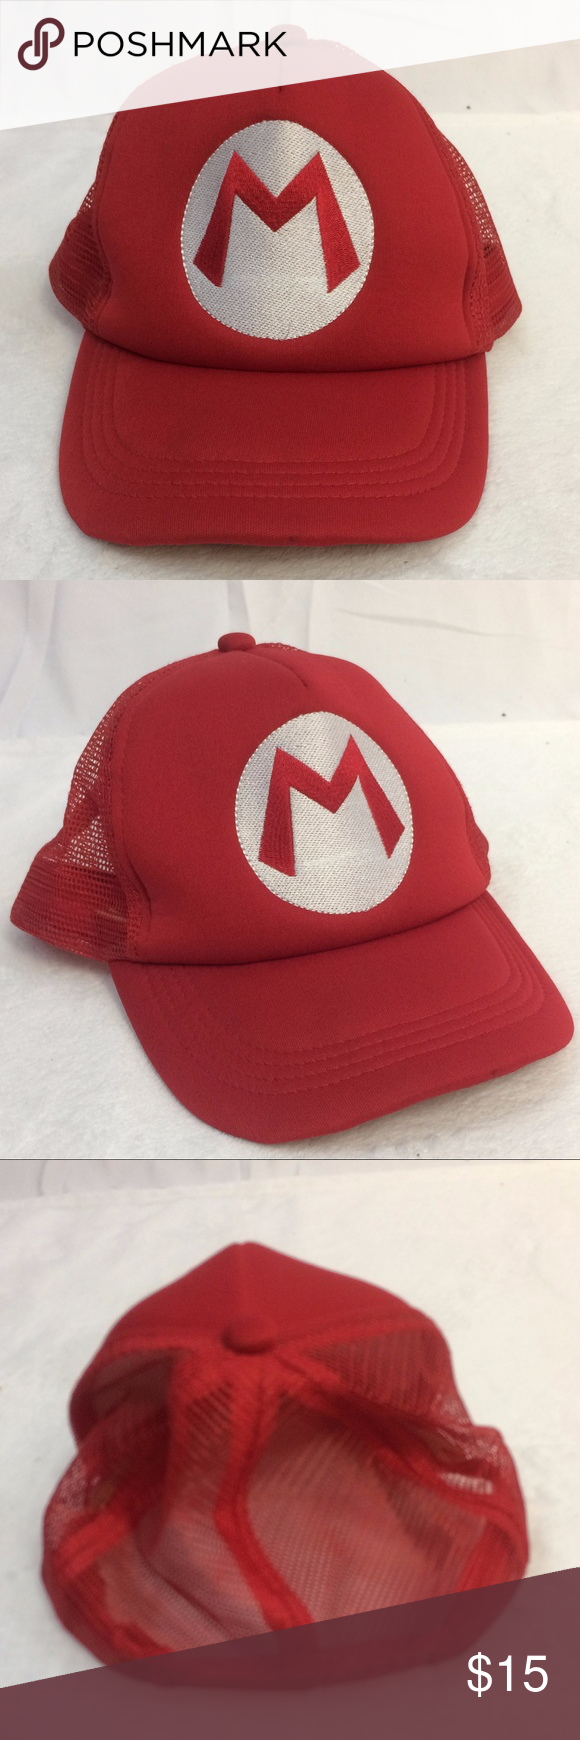 Super Mario Bros Nintendo Game Character Hat Os Mario Hat Trucker Style With Adjustable Back Mesh Bac Super Mario Bros Nintendo Super Mario Bros Mario Hat